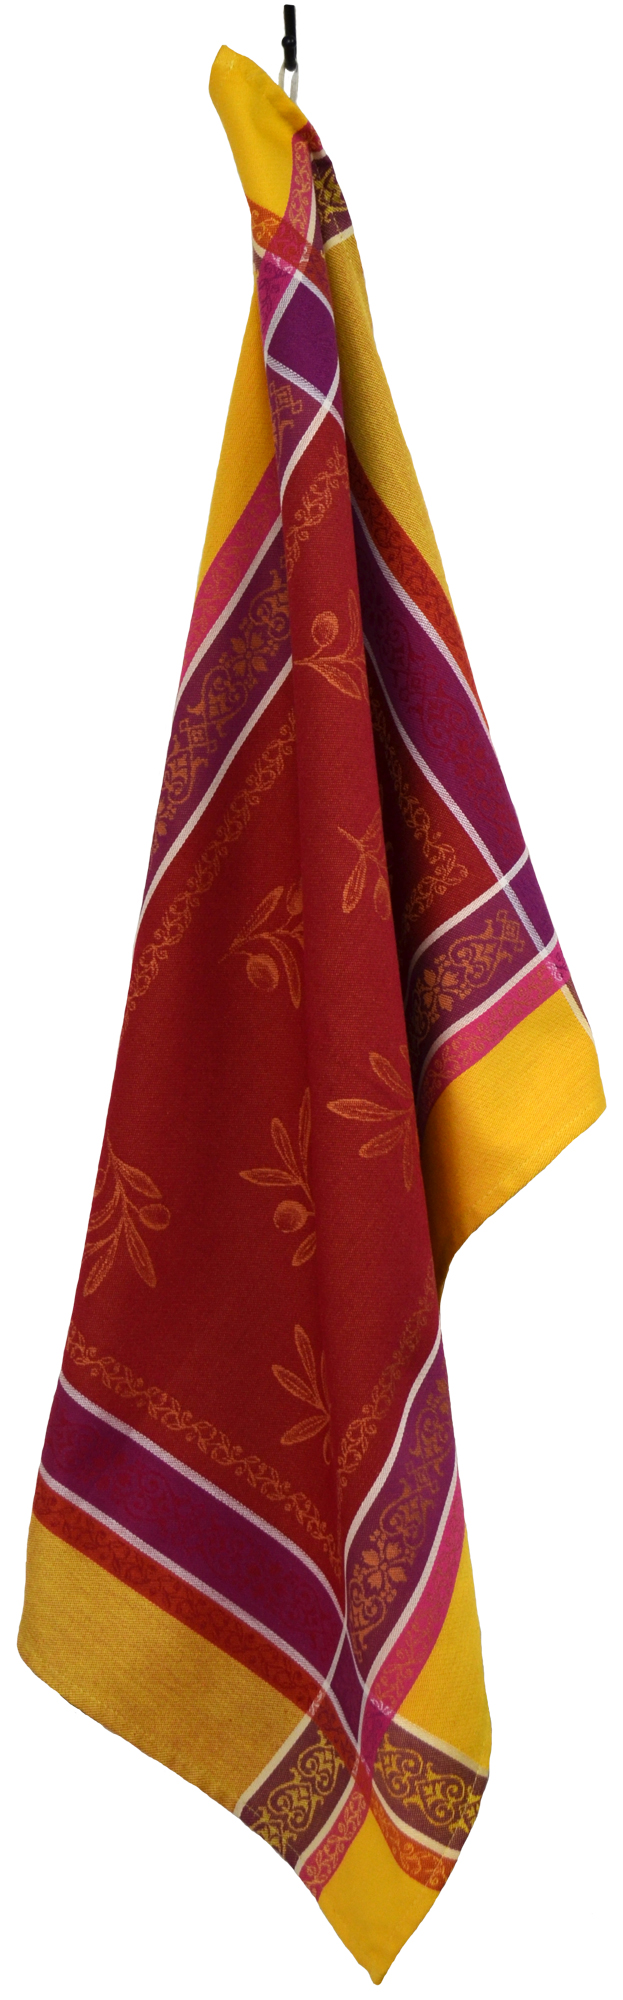 """Olives French Jacquard Tea Towel - Collection """"Olivia"""" Red/Yellow, Size: 21 x 29 inches, Price CAN$19.95"""